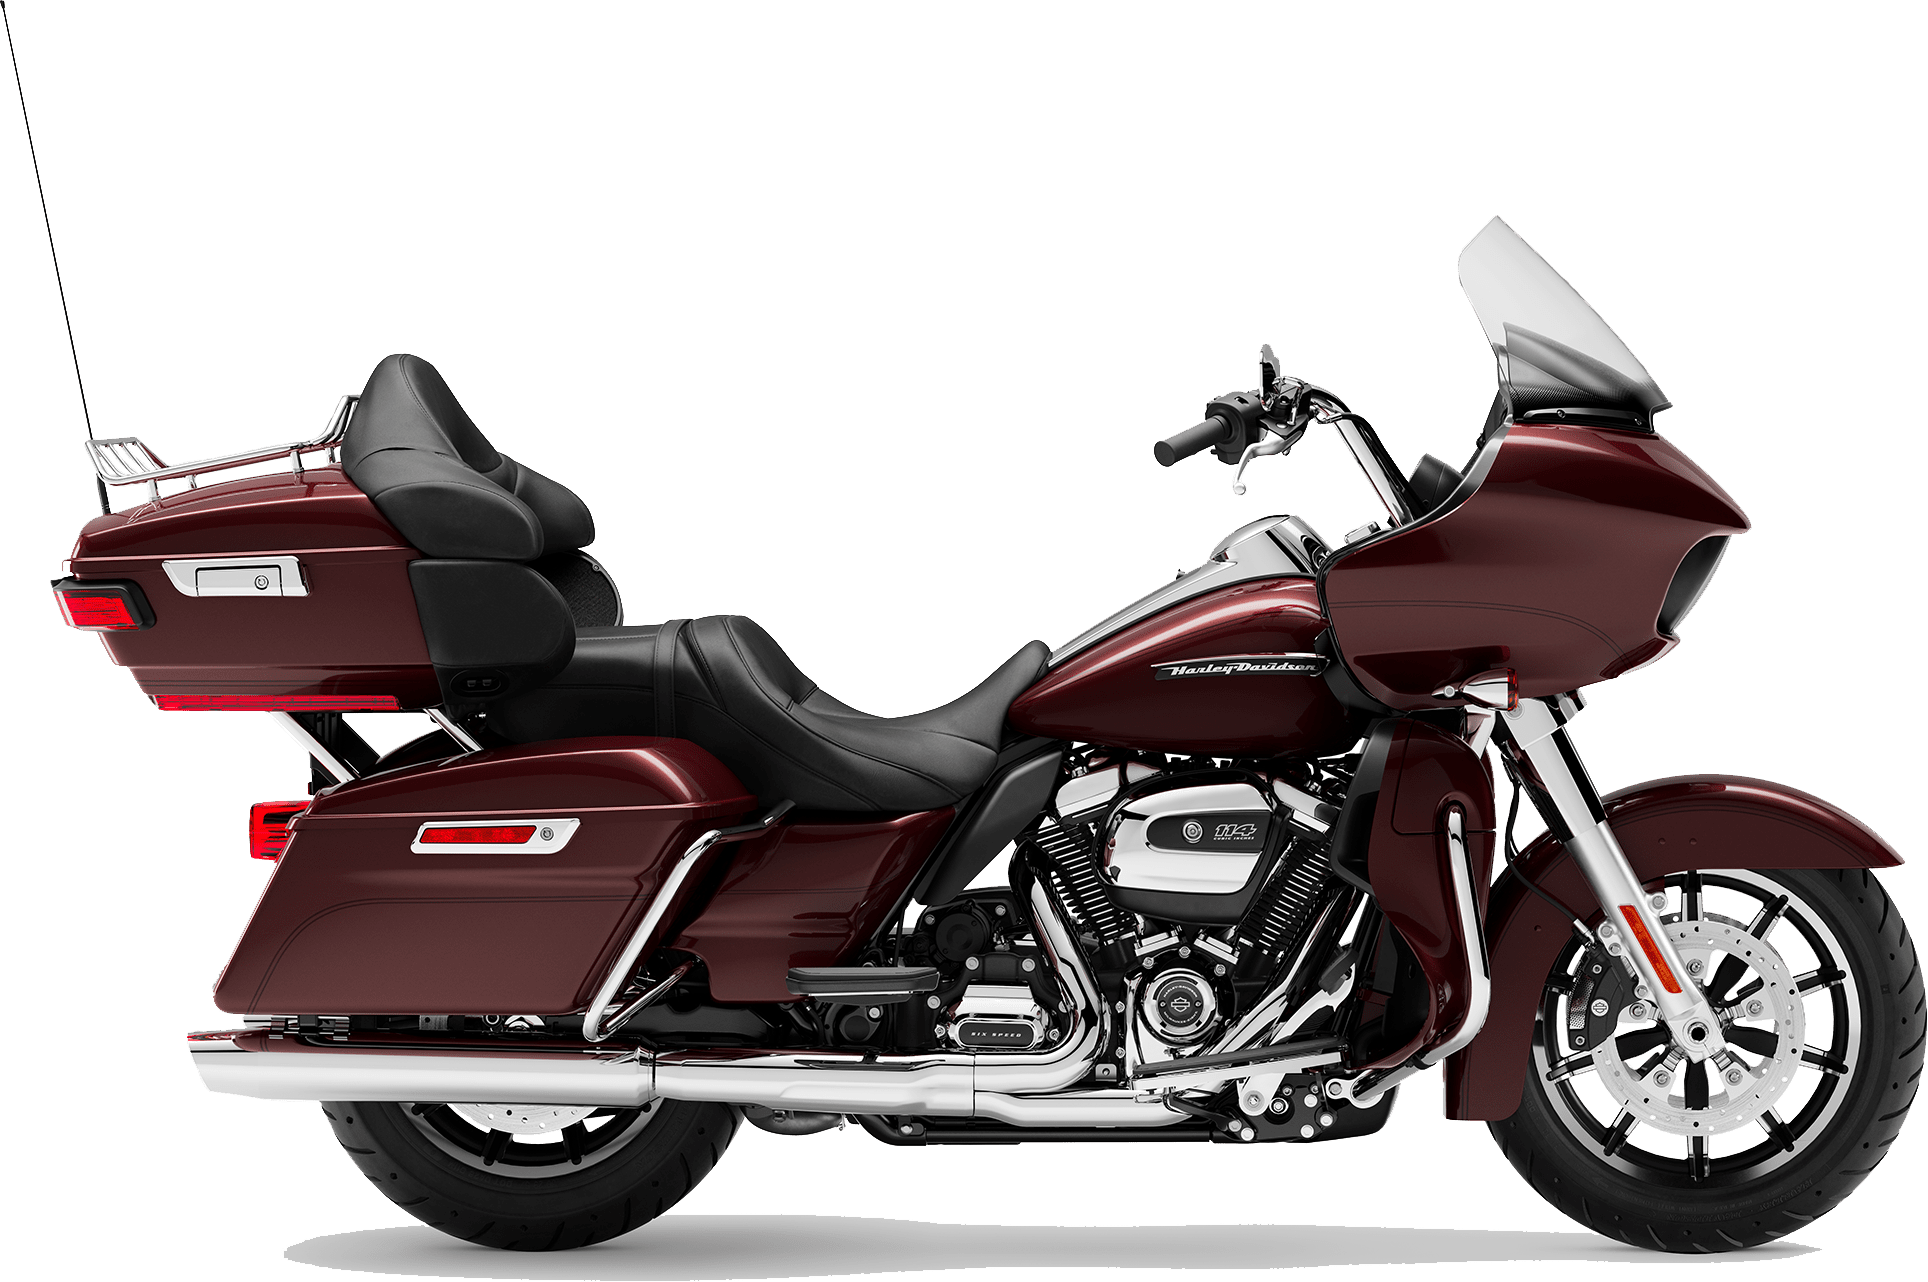 2019 Harley-Davidson H-D Touring Road Glide Ultra Twisted Cherry